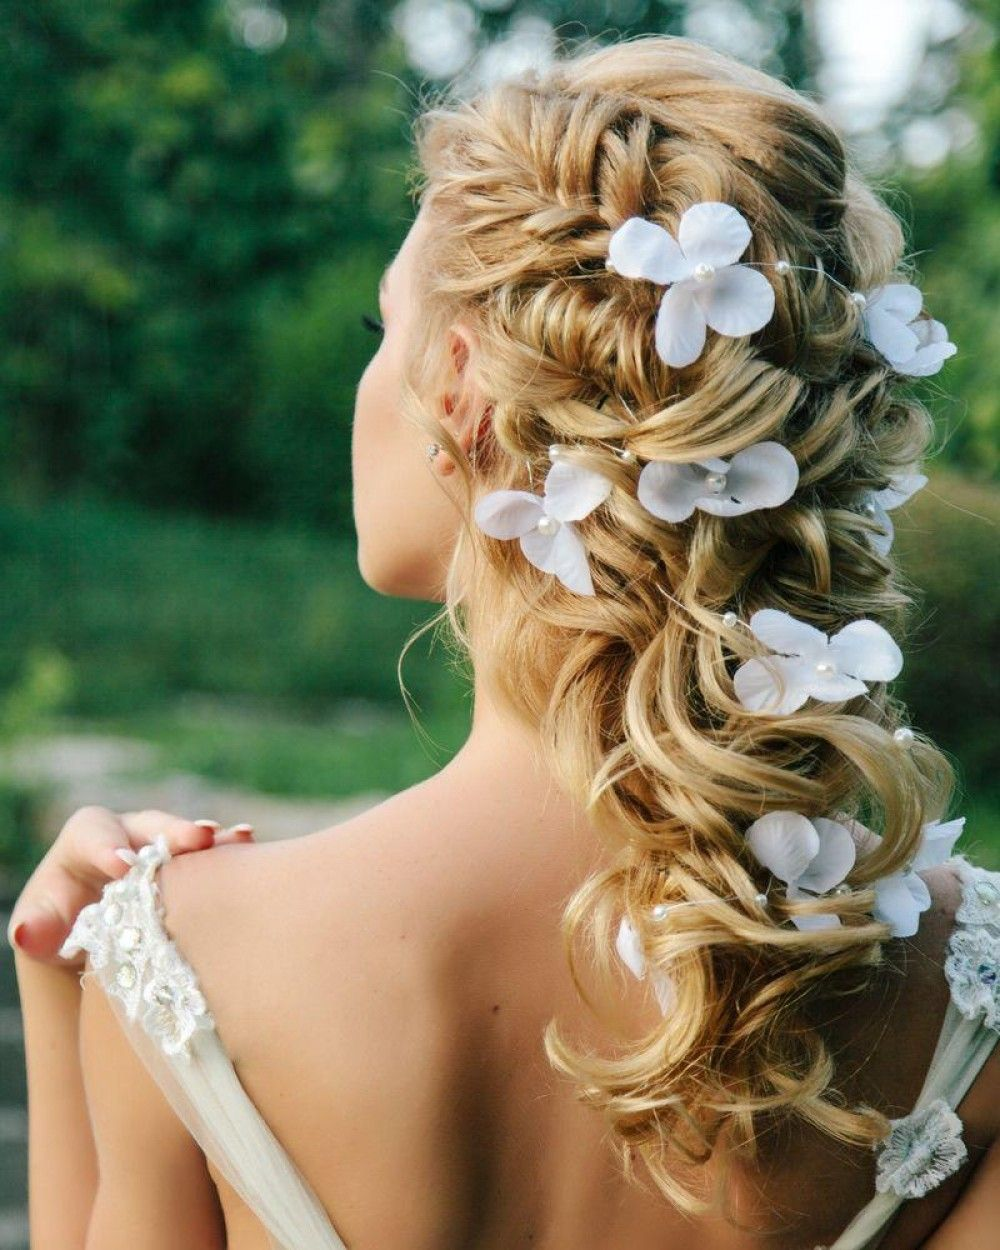 Hairstyle with flowers at the back